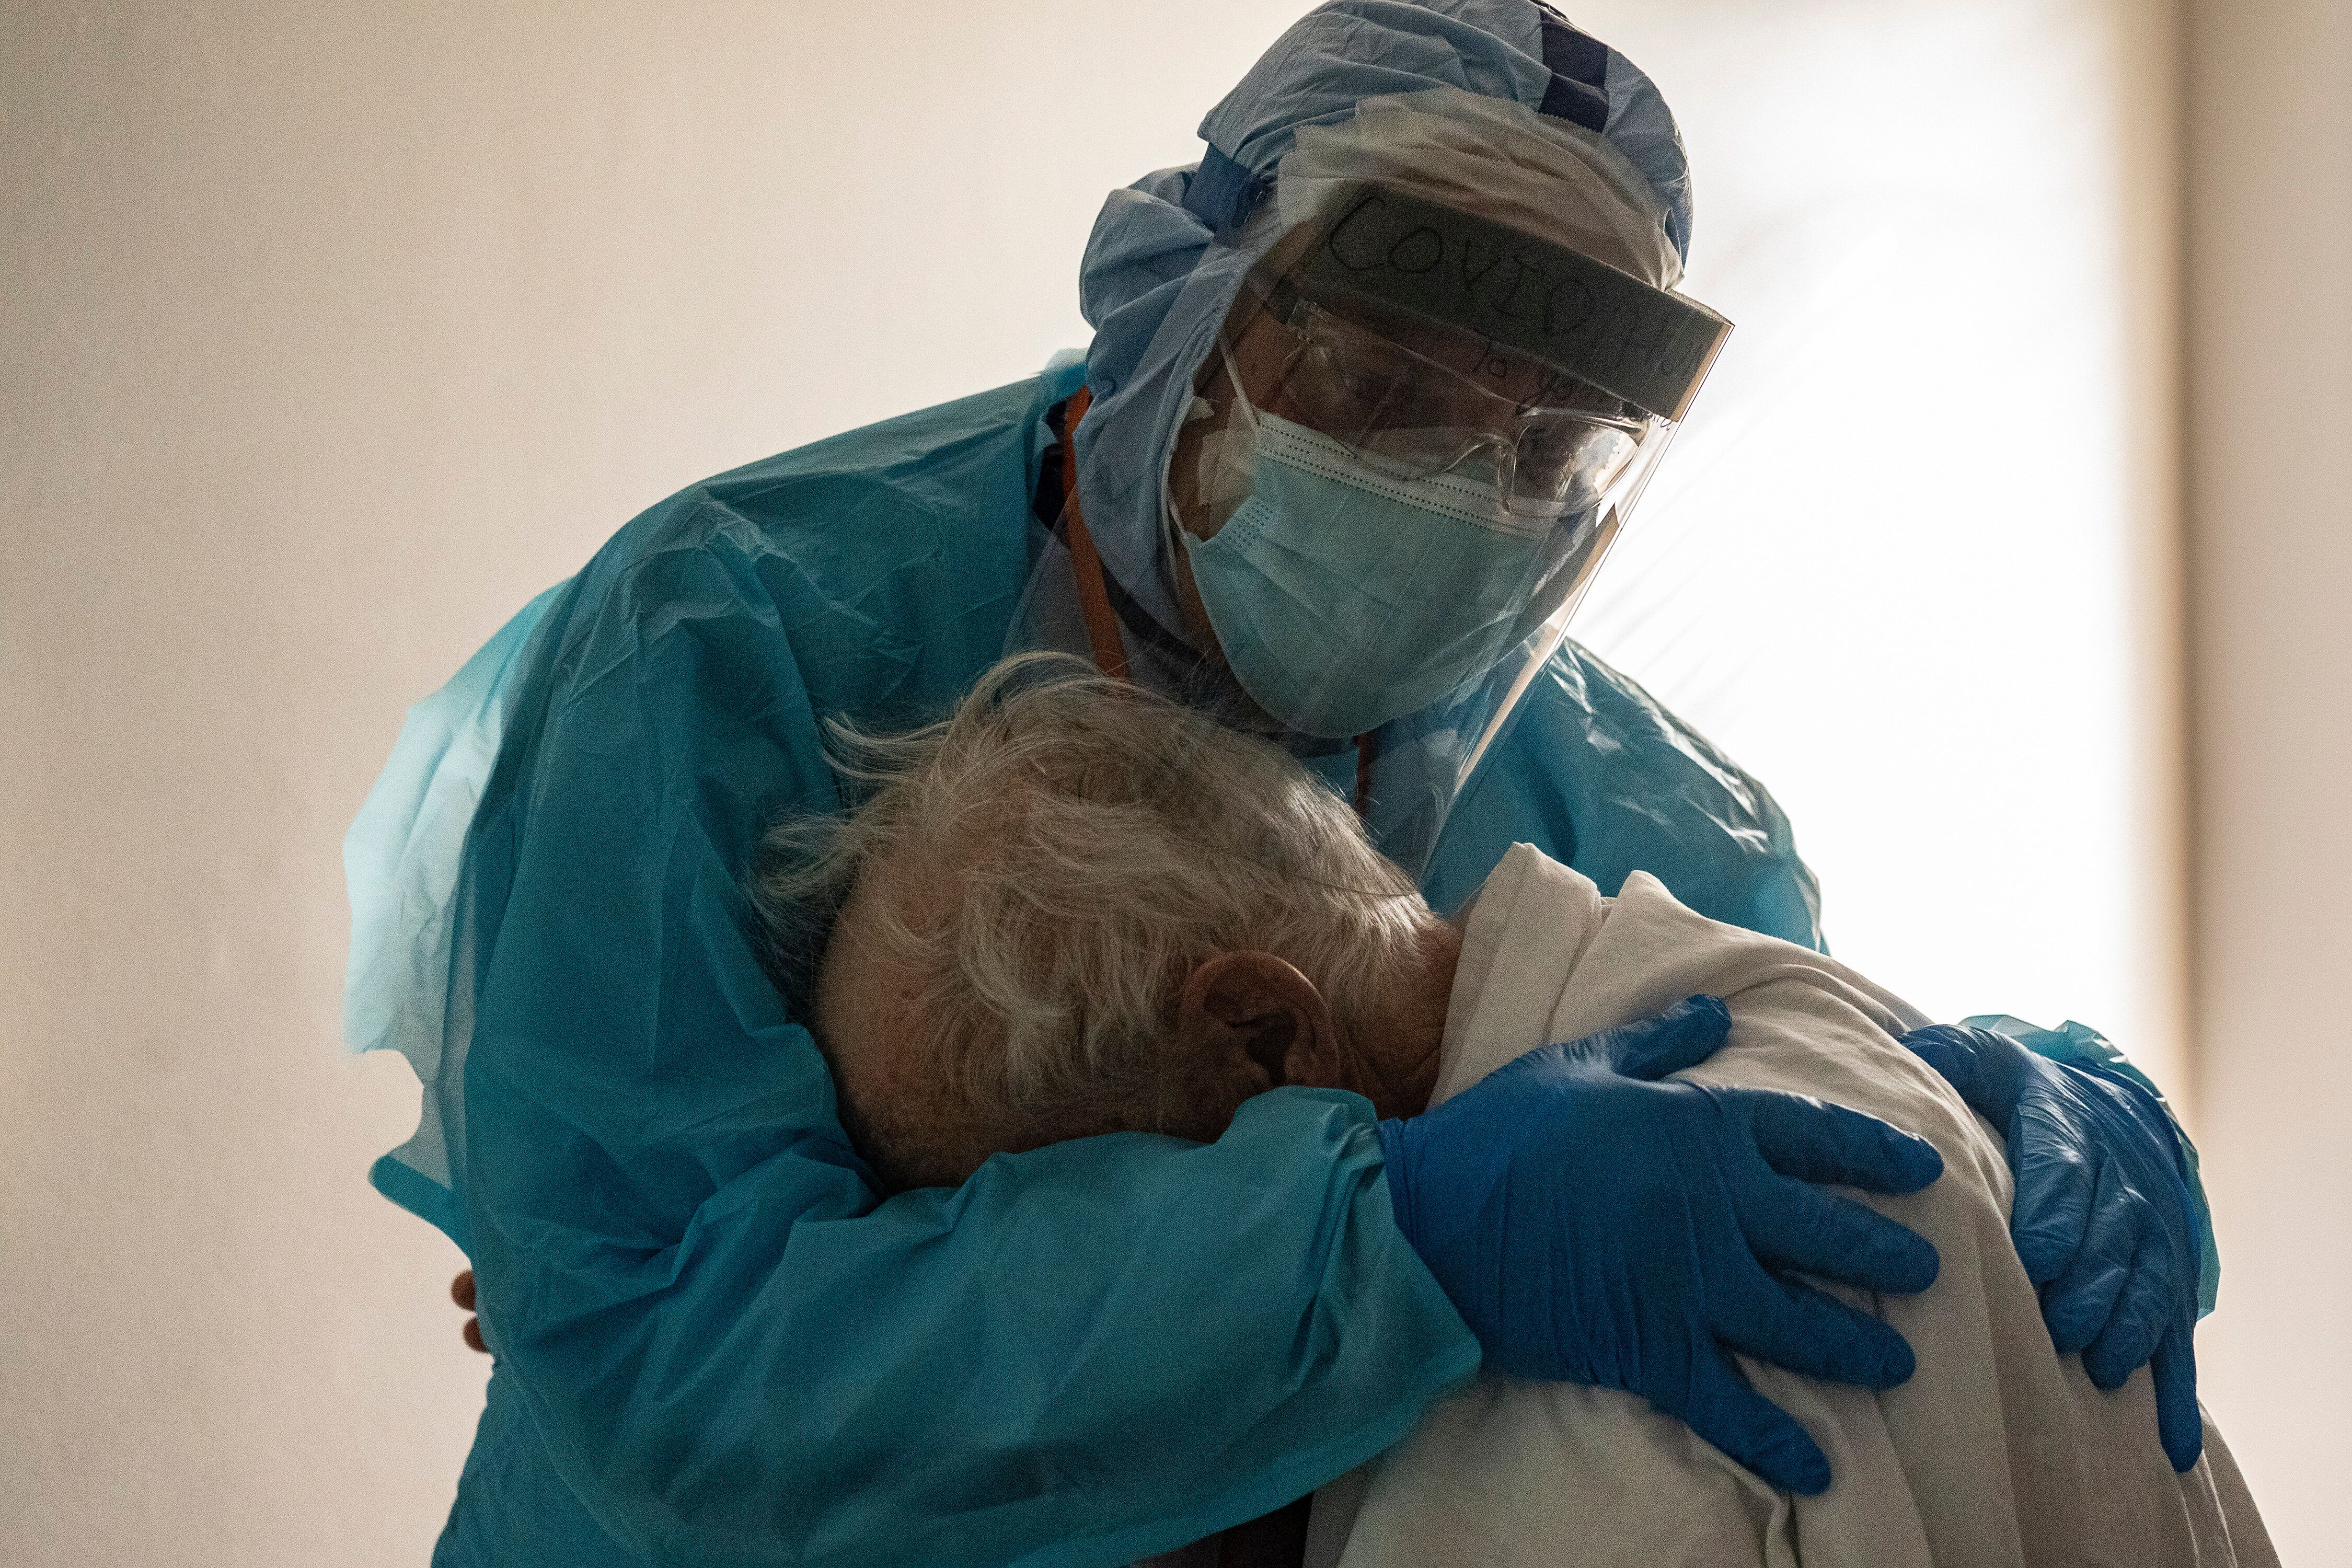 Dr. Joseph Varon hugs and comforts a patient in the COVID-19 intensive care unit on Thanksgiving day at the United Memorial M